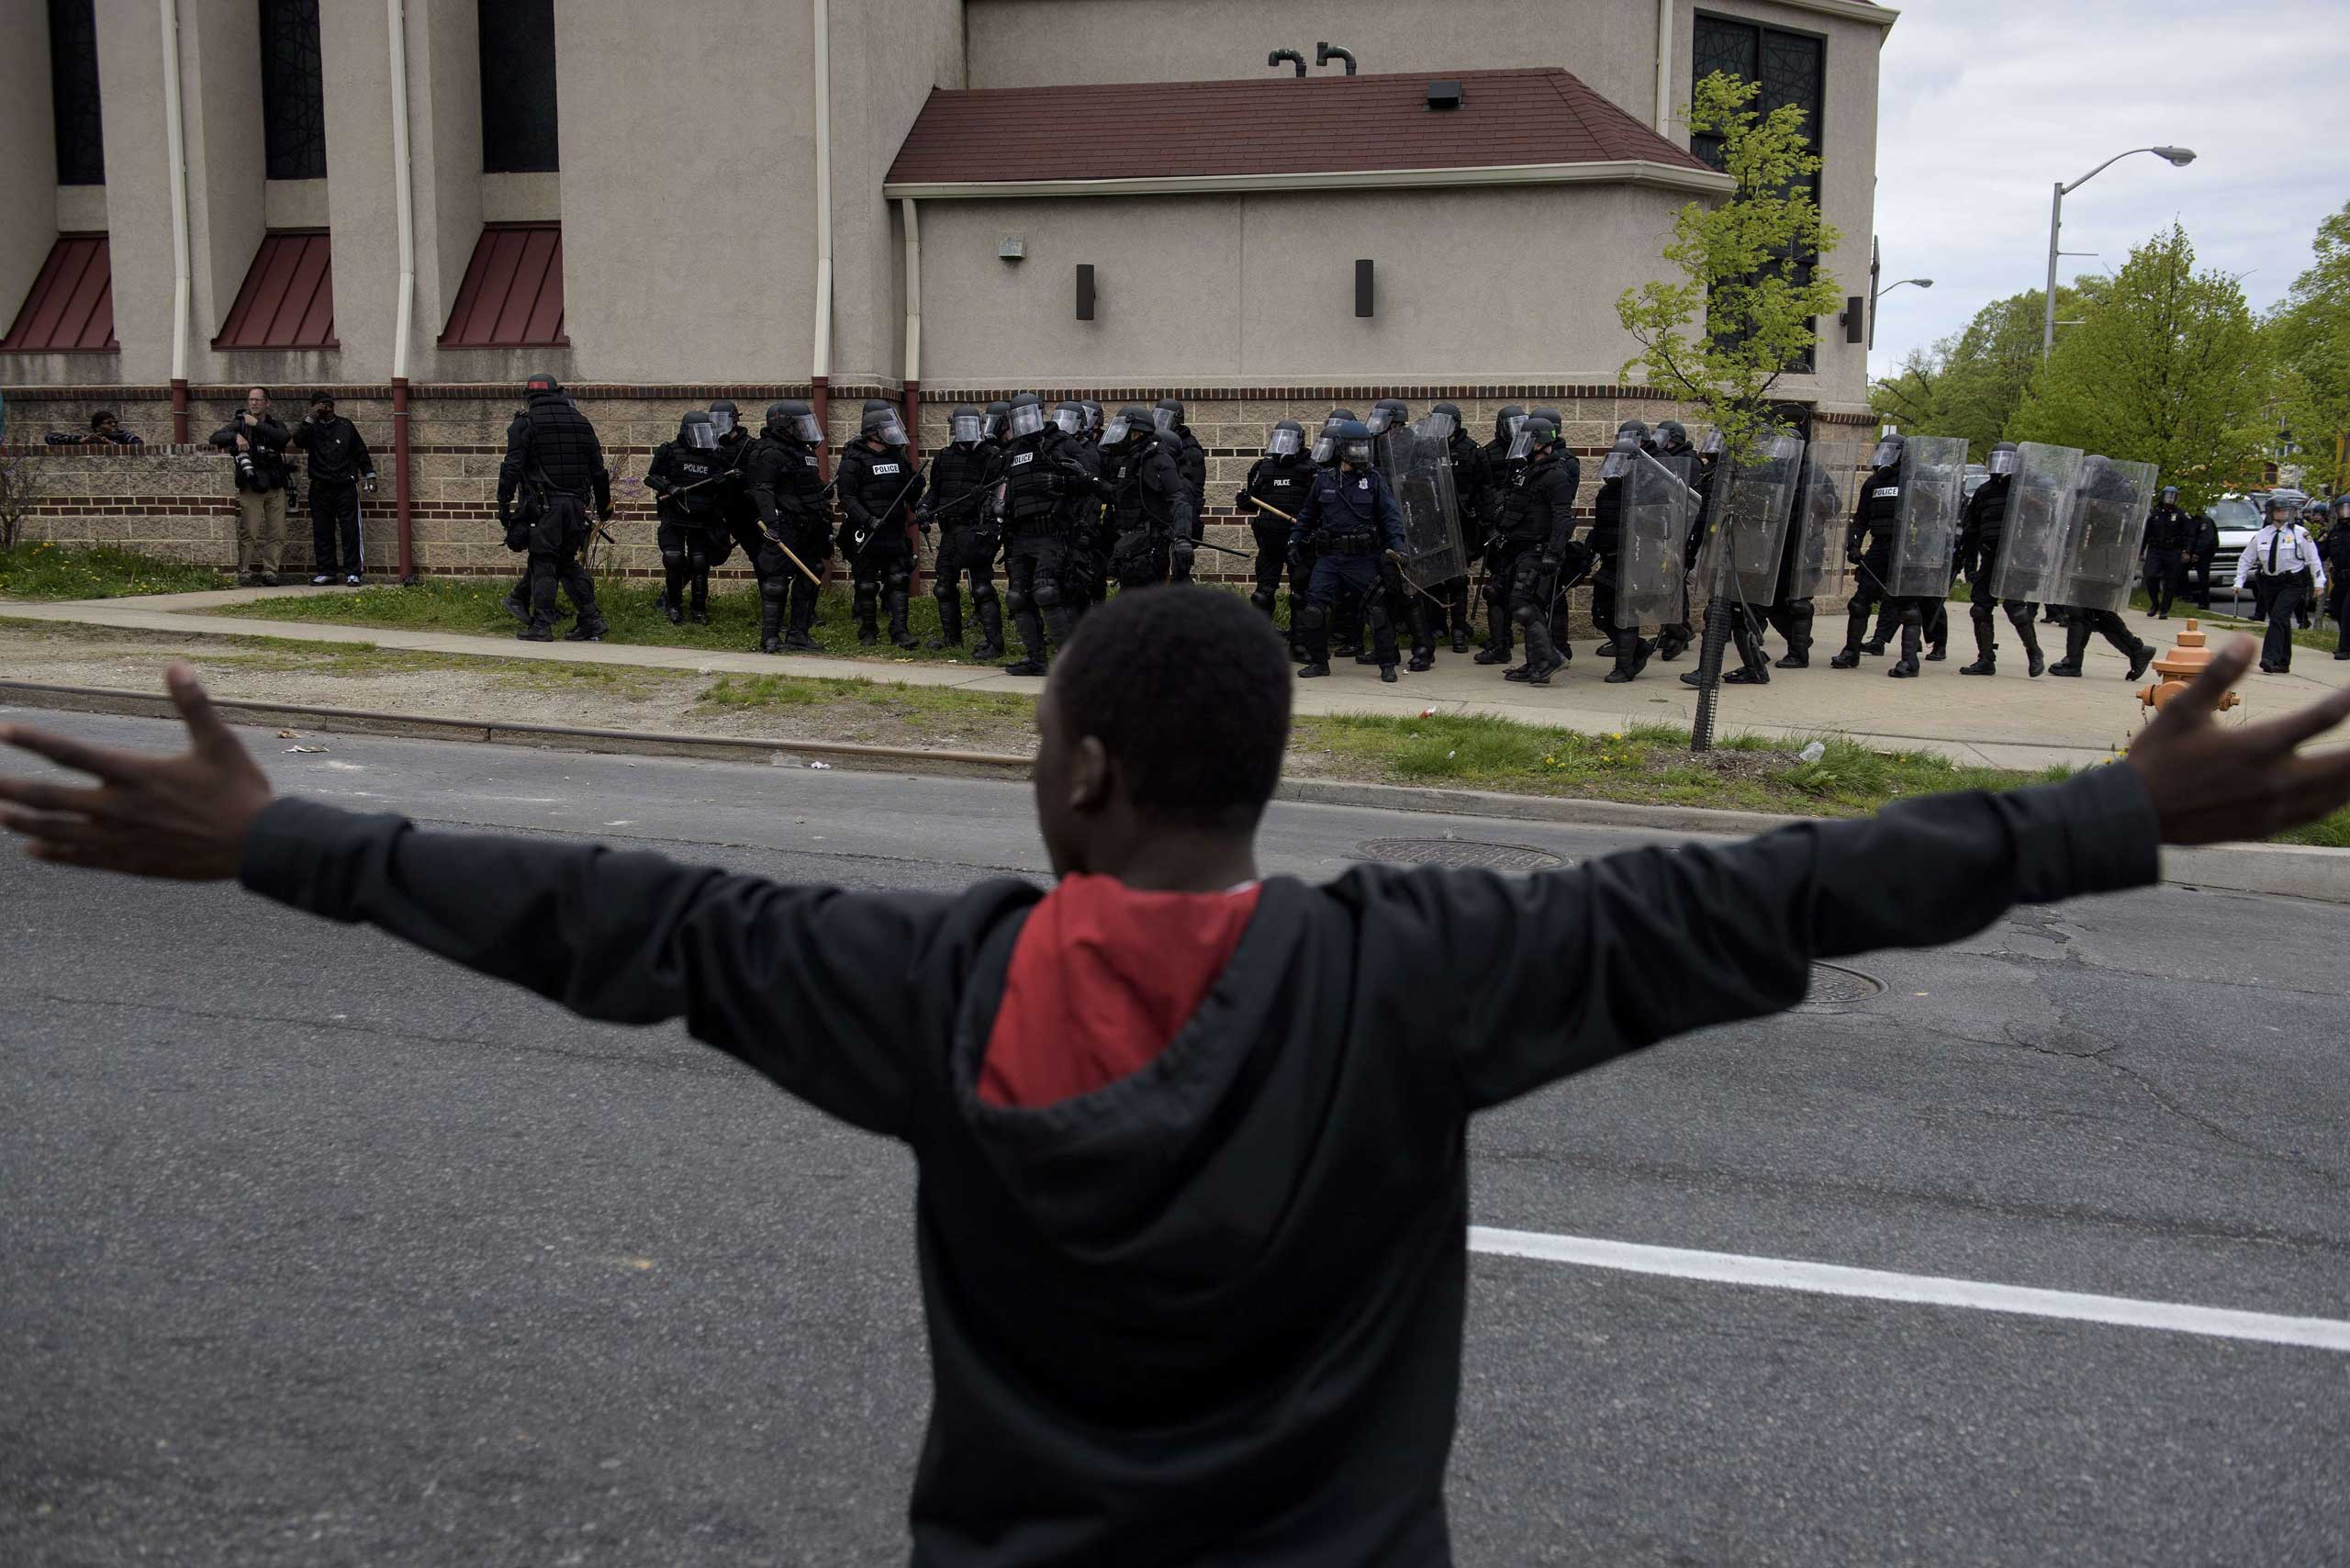 Baltimore police officers form a line in front of protesters near Mondawmin Mall in Baltimore on April 27, 2015.